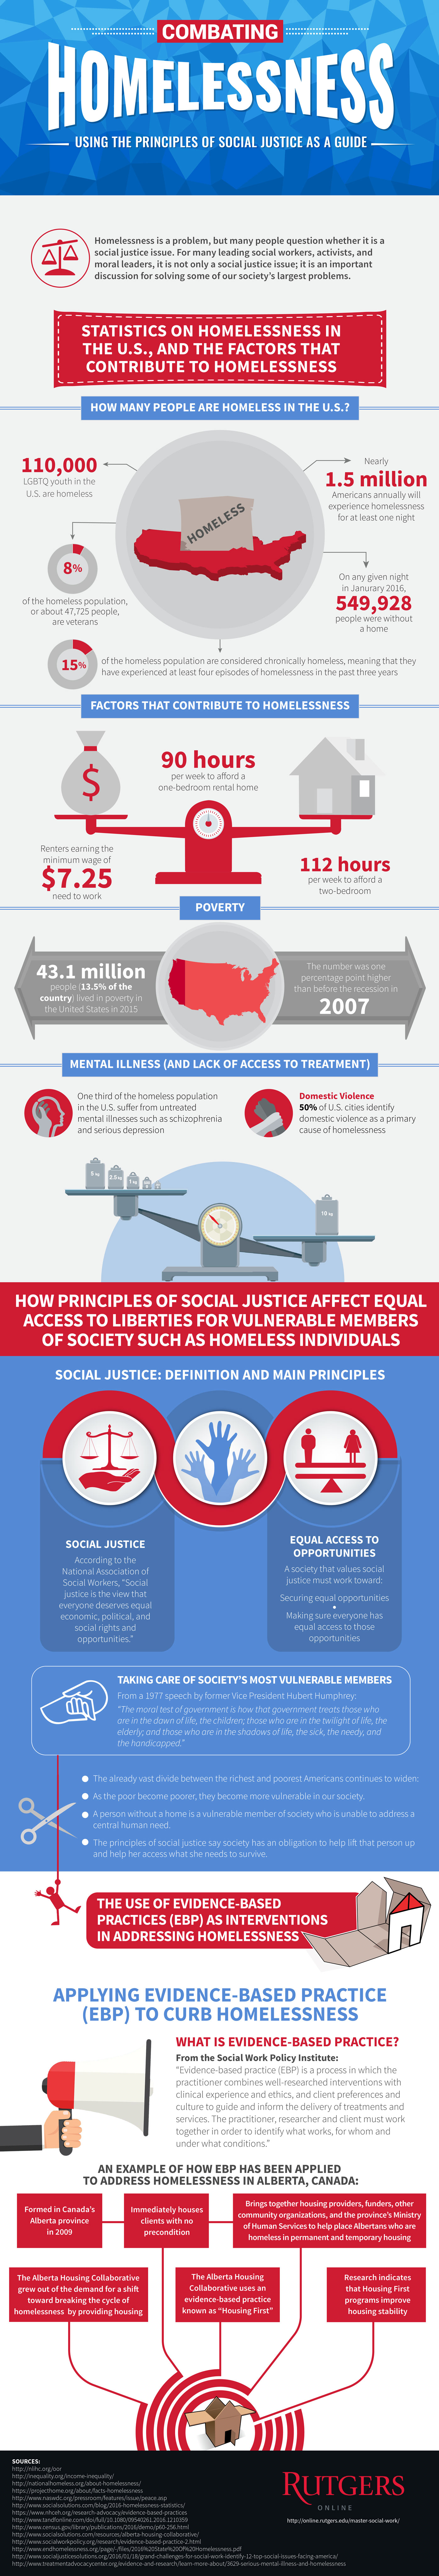 Combatting Homelessness Using the Principles of Social Justice as a Guide